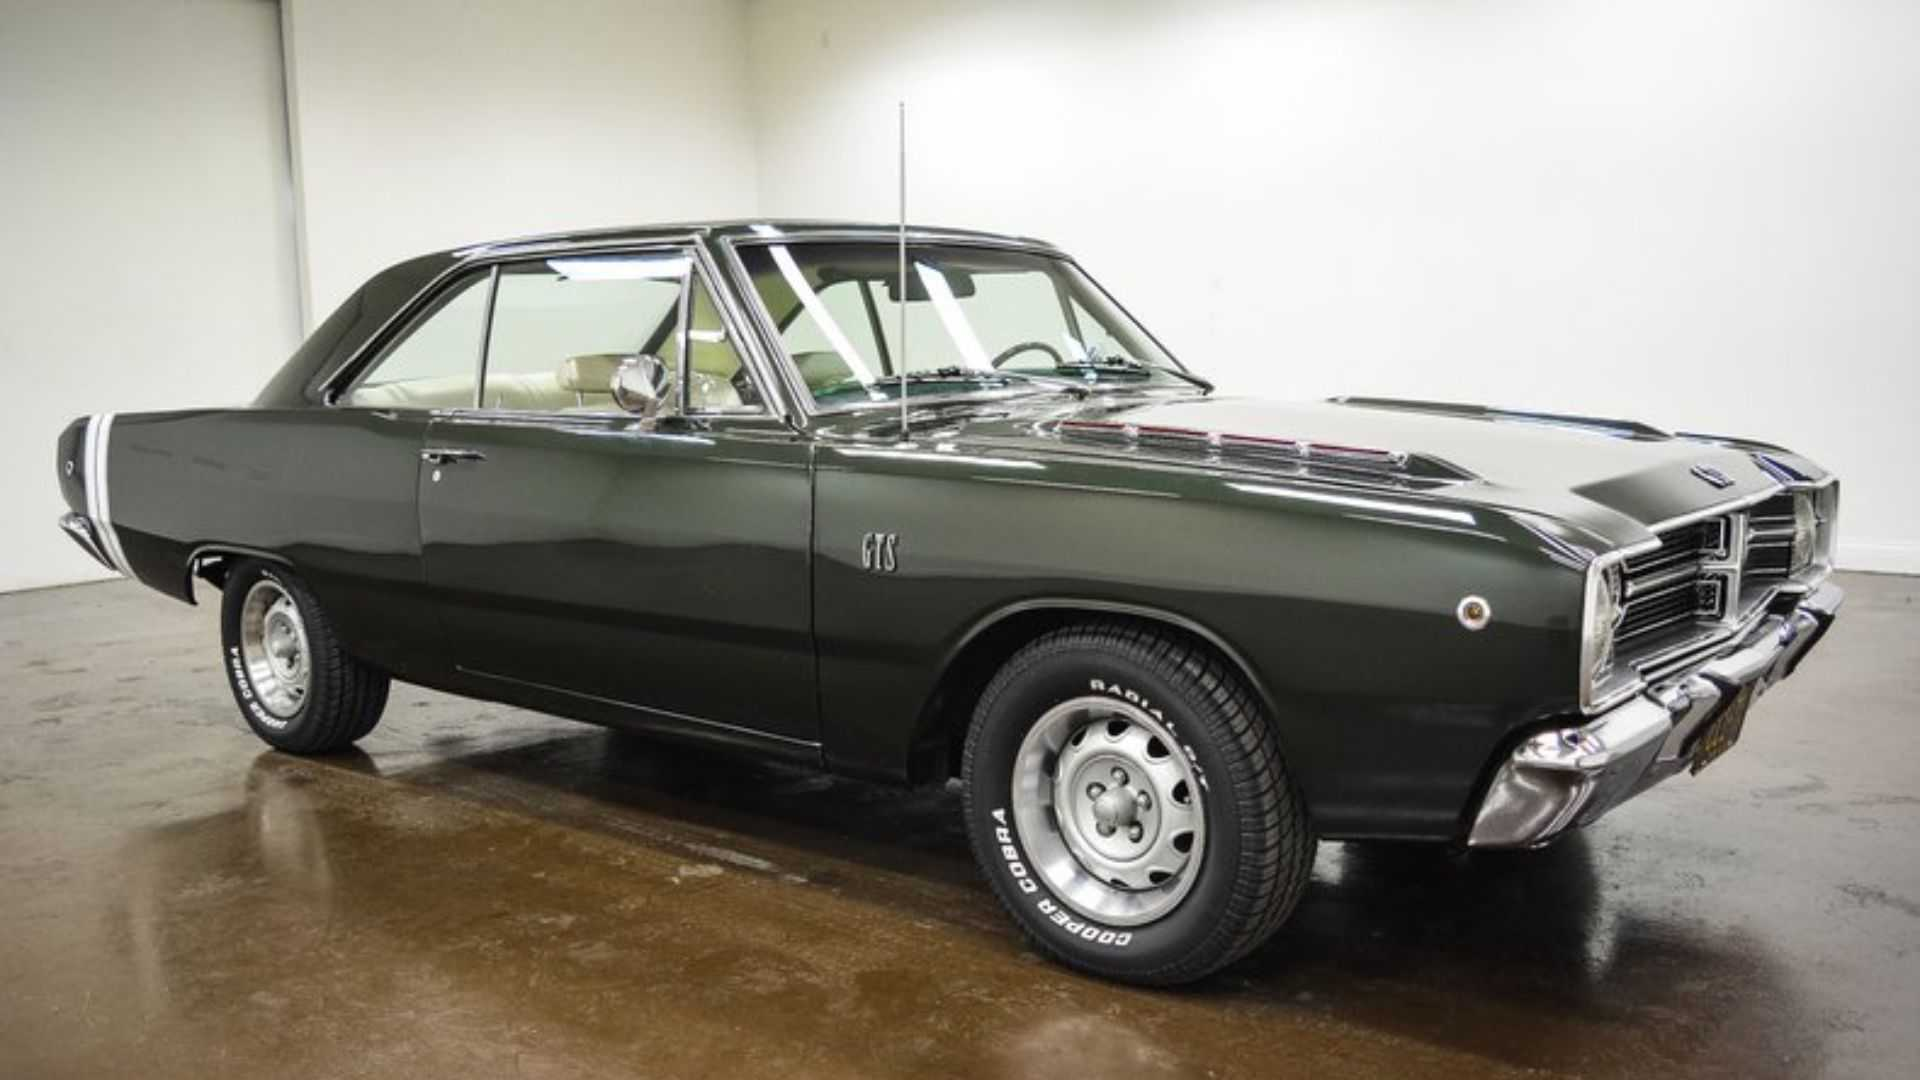 1968 Dodge Dart Gts Is A Lightly Used Heavy Hitter Motorious